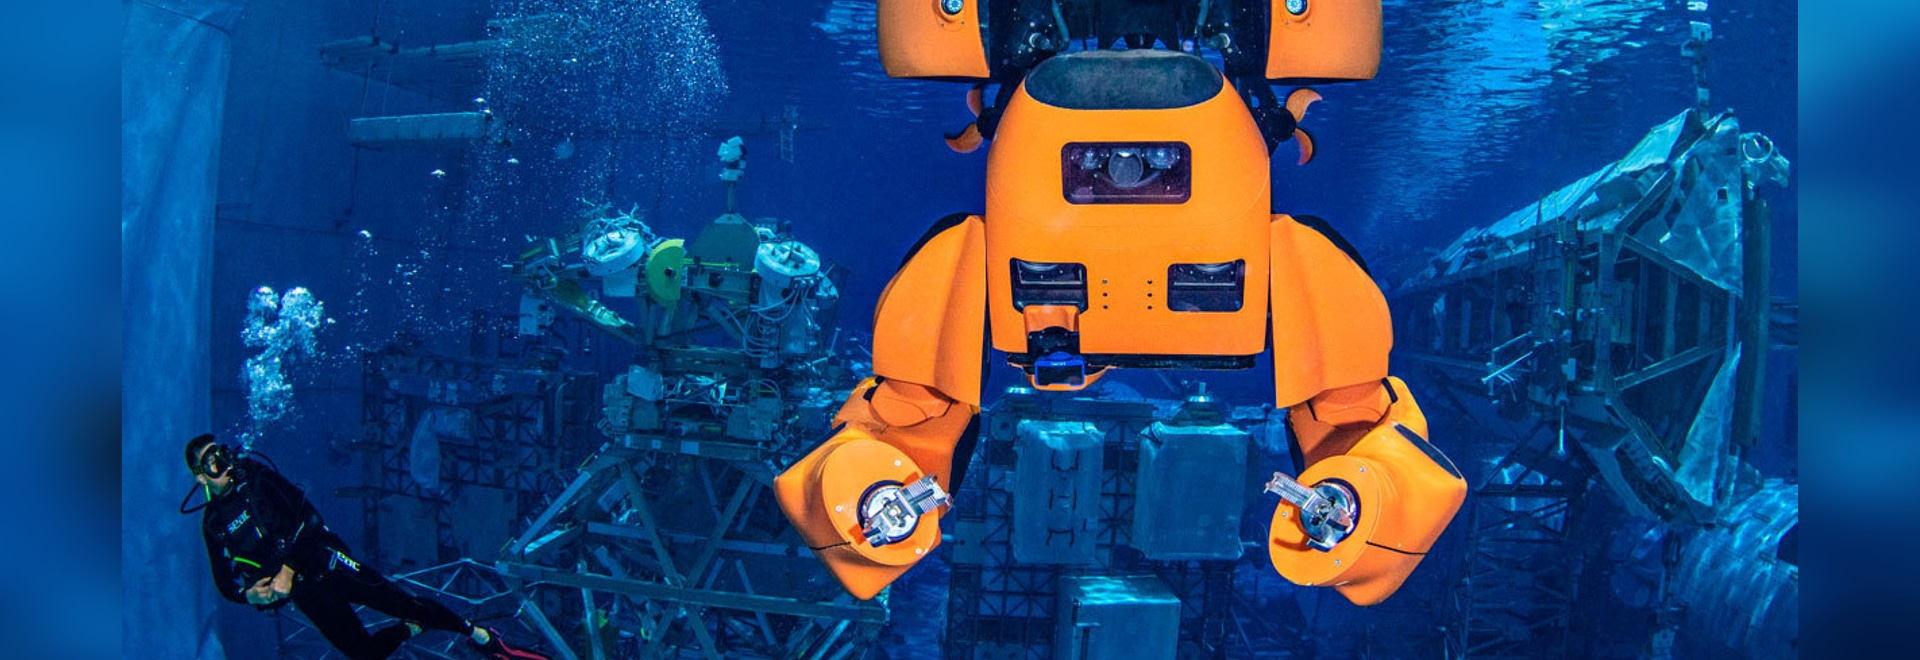 Into the Blue: The robot Aquanaut floats underwater during a test at NASA's Neutral Buoyancy Laboratory.